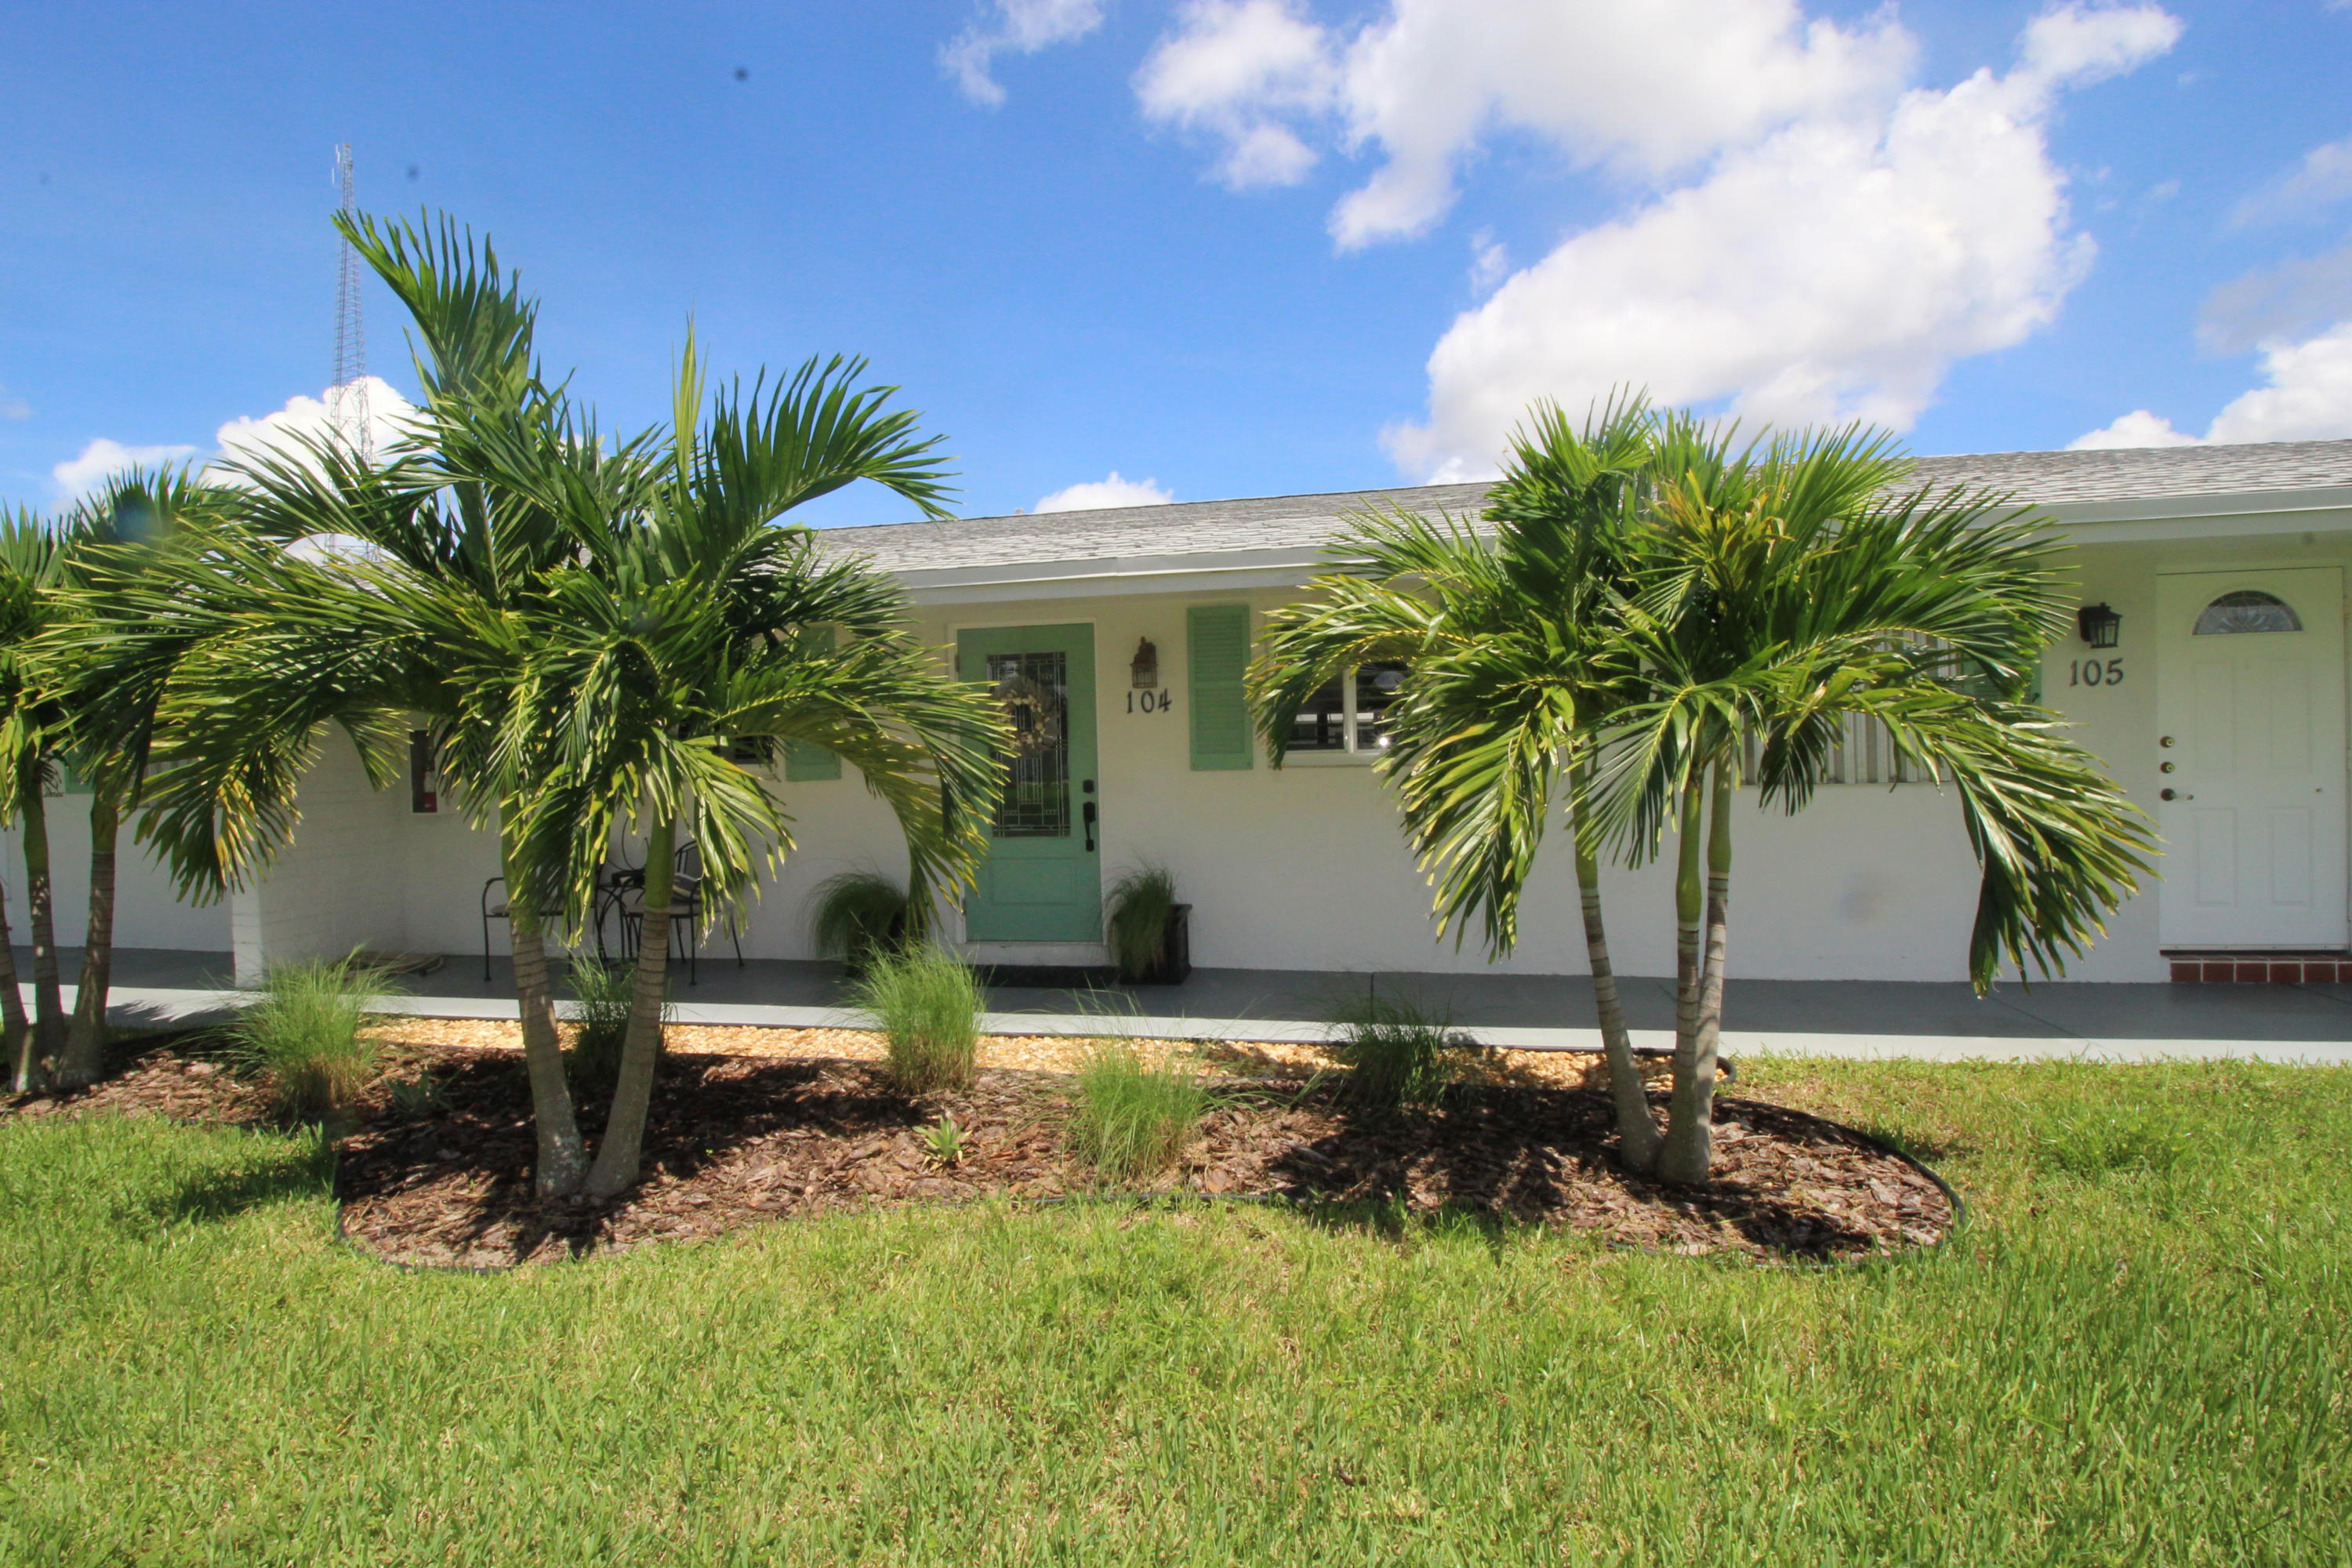 400 Sw Golfview Terrace, Boynton Beach, FL 33426